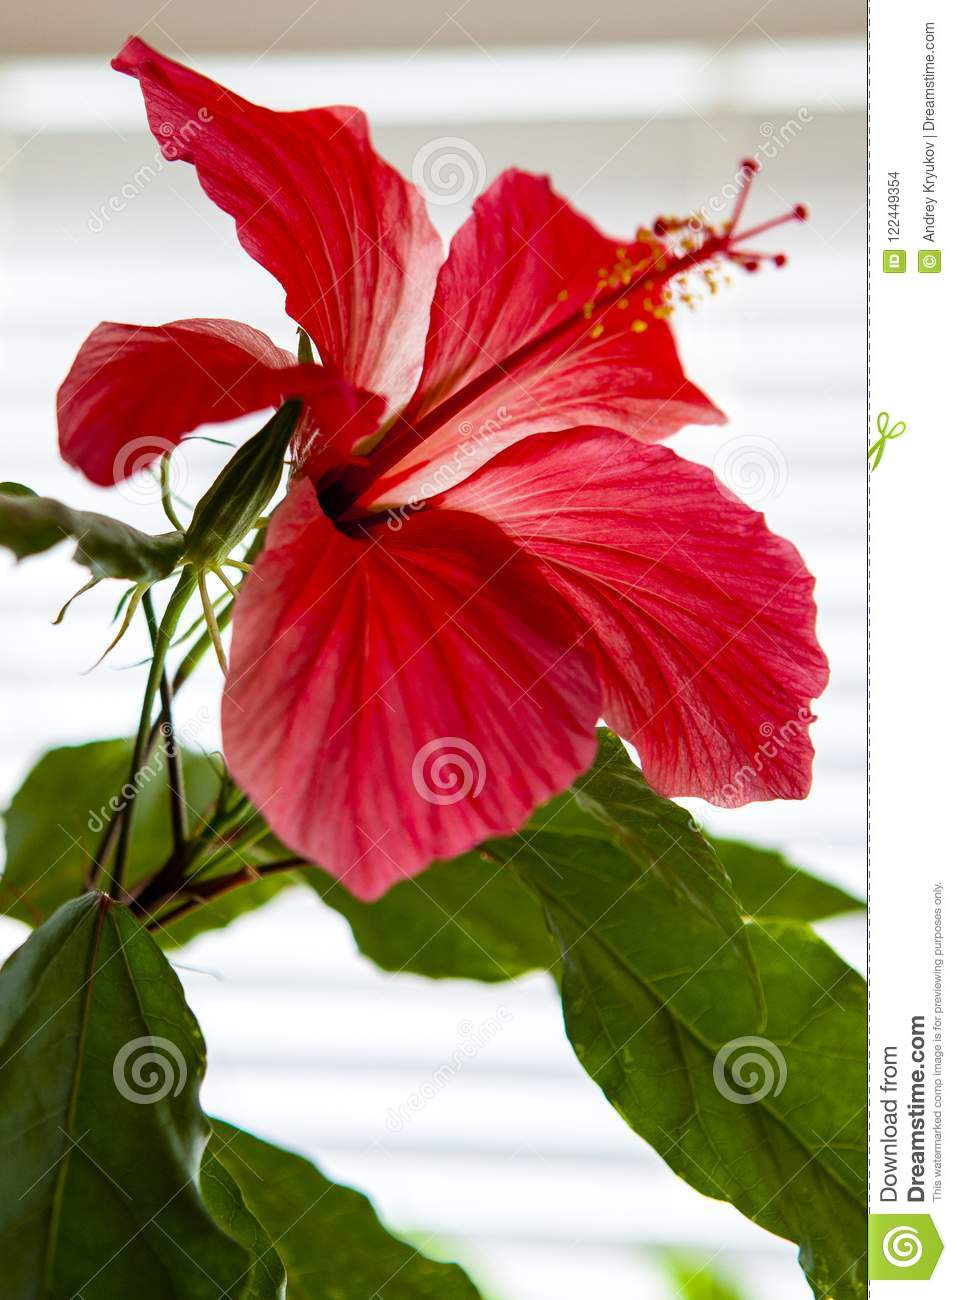 Bright Red Hibiscus Flower With Green Foliage On A White Background